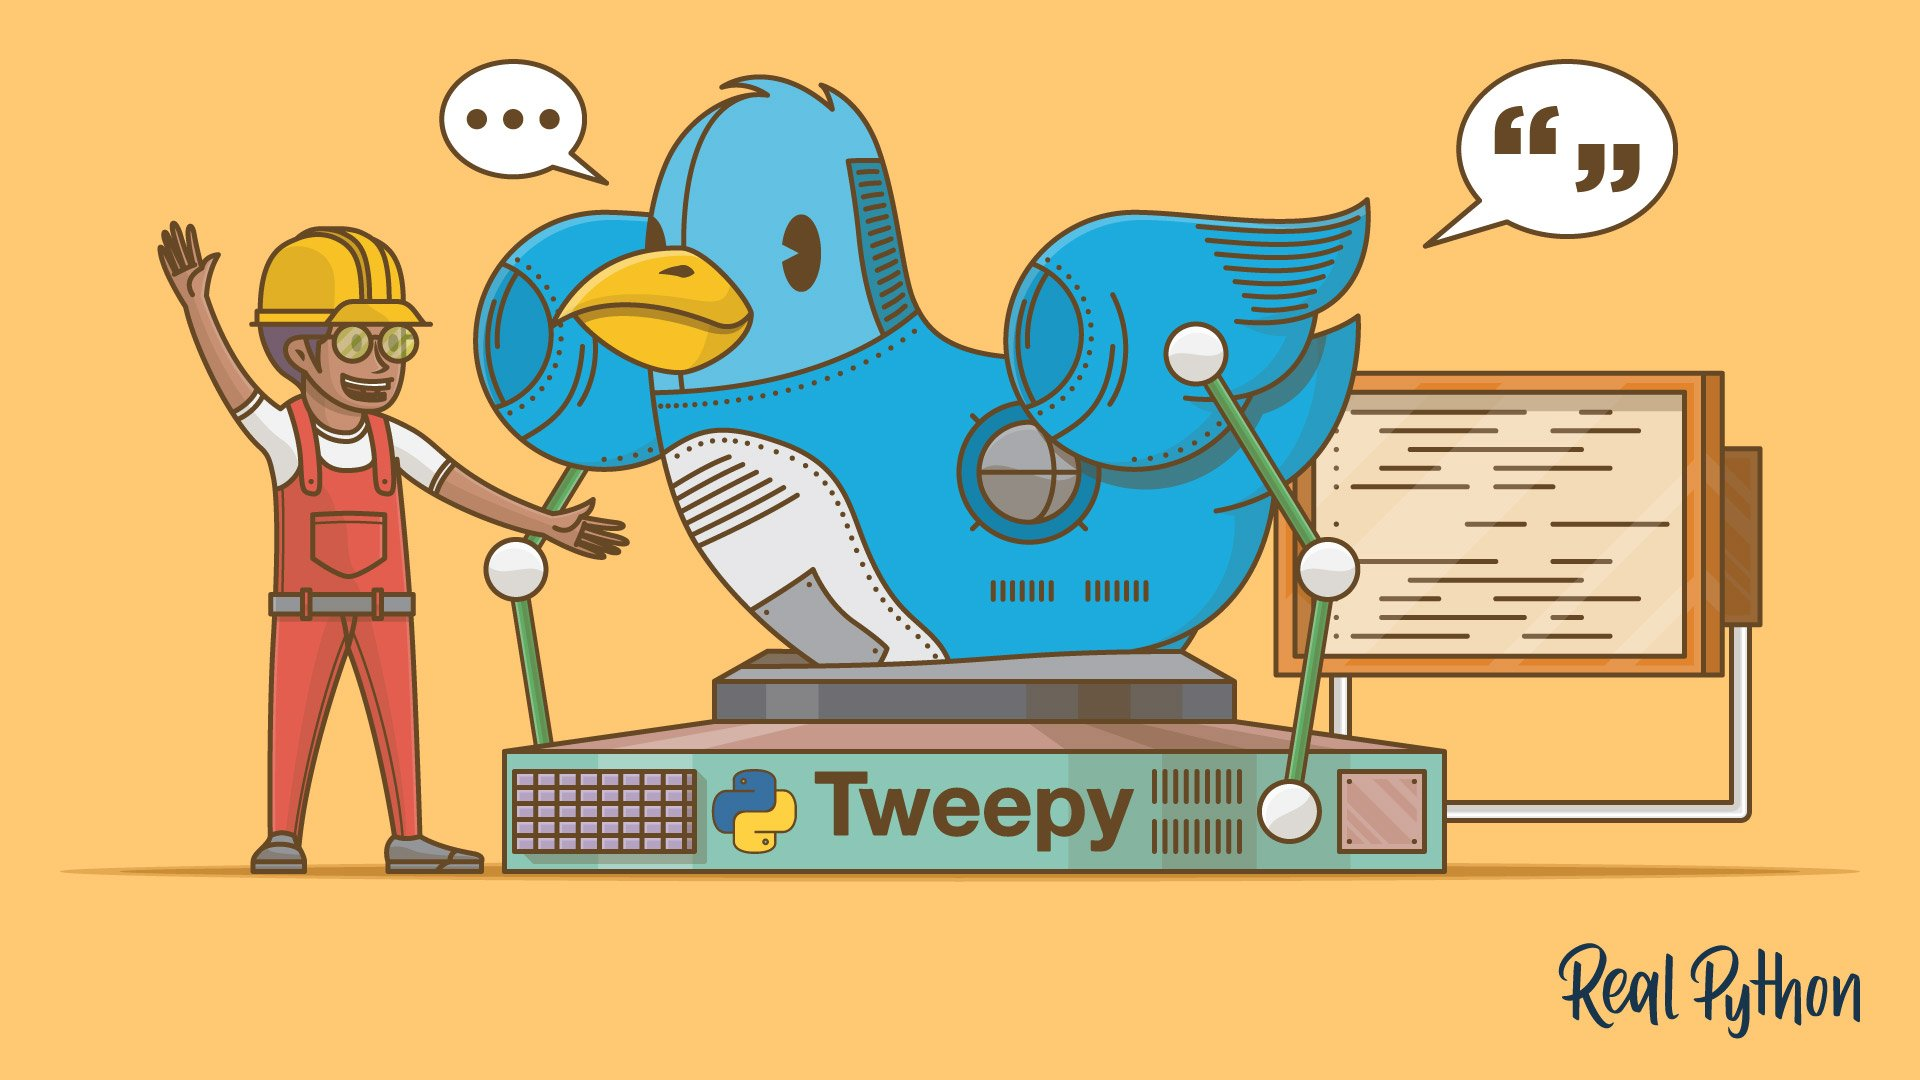 How to Make a Twitter Bot in Python With Tweepy